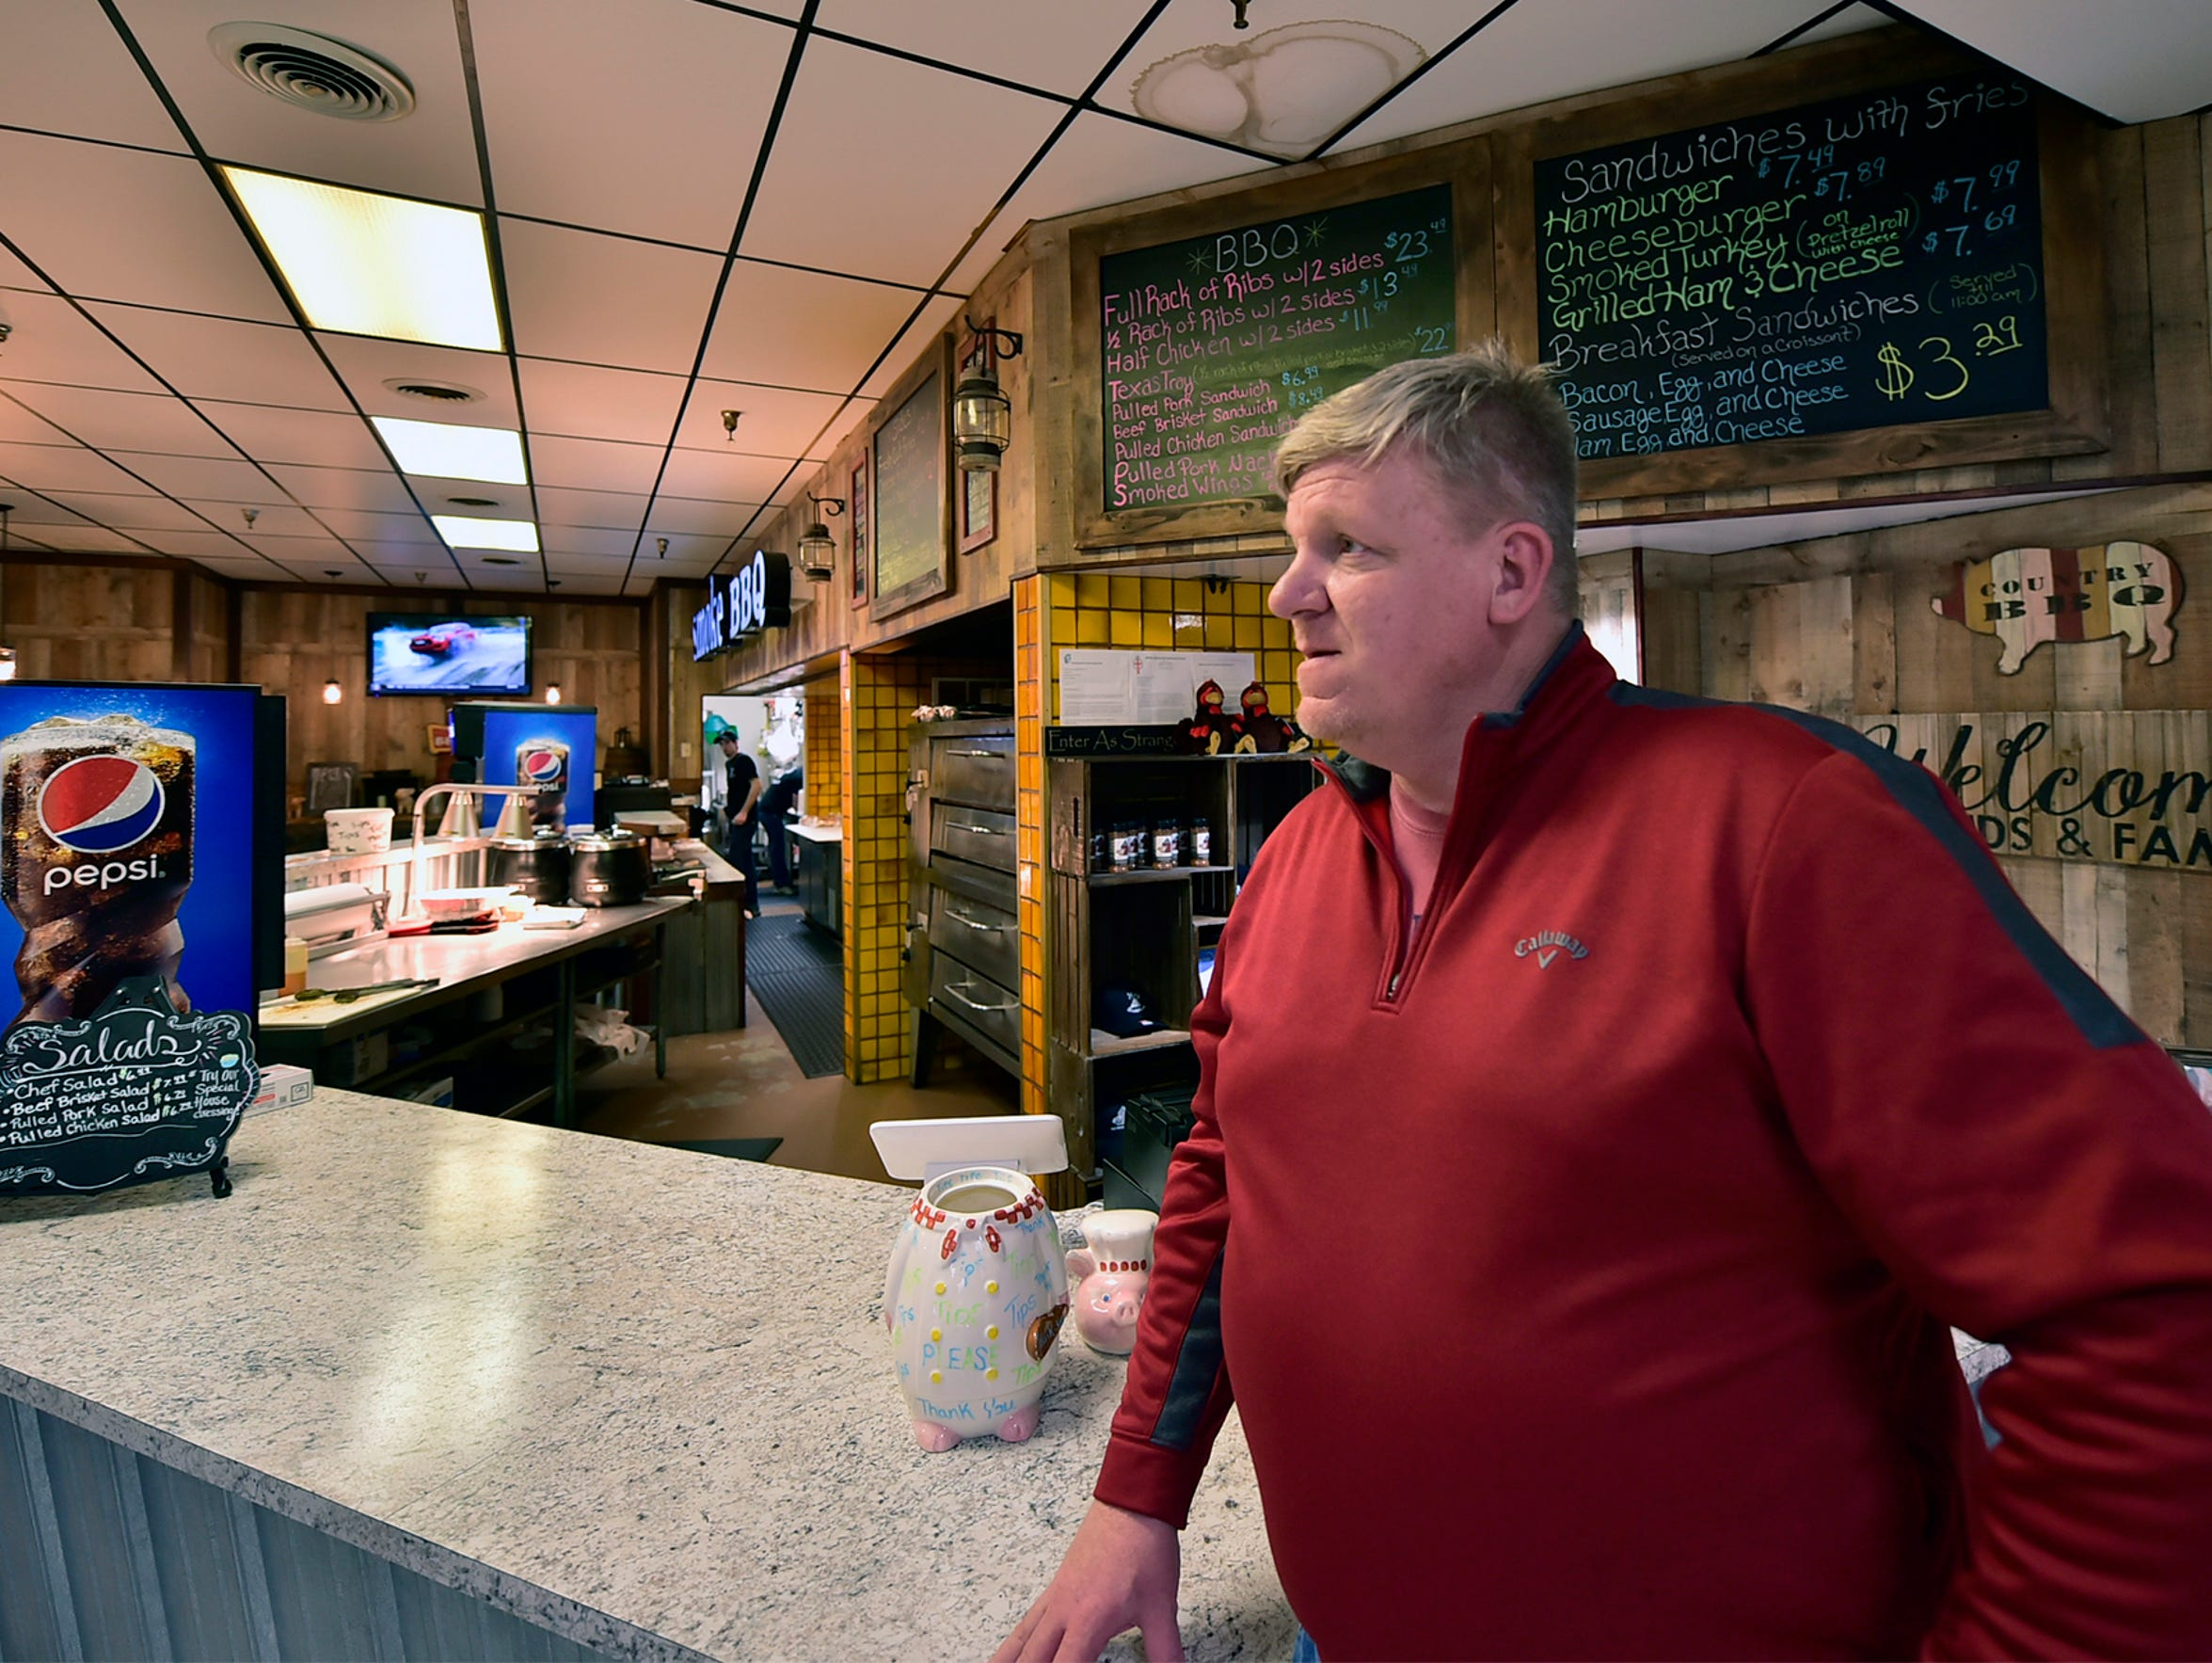 Greg Hurst is the owner of Holy Smokehouse BBQ at Chambersbrug Mall. Bon-Ton is closing and many anchor stores have left Chambersburg Mall. The future of the mall, and other malls nationally, could be impacted by store closings.